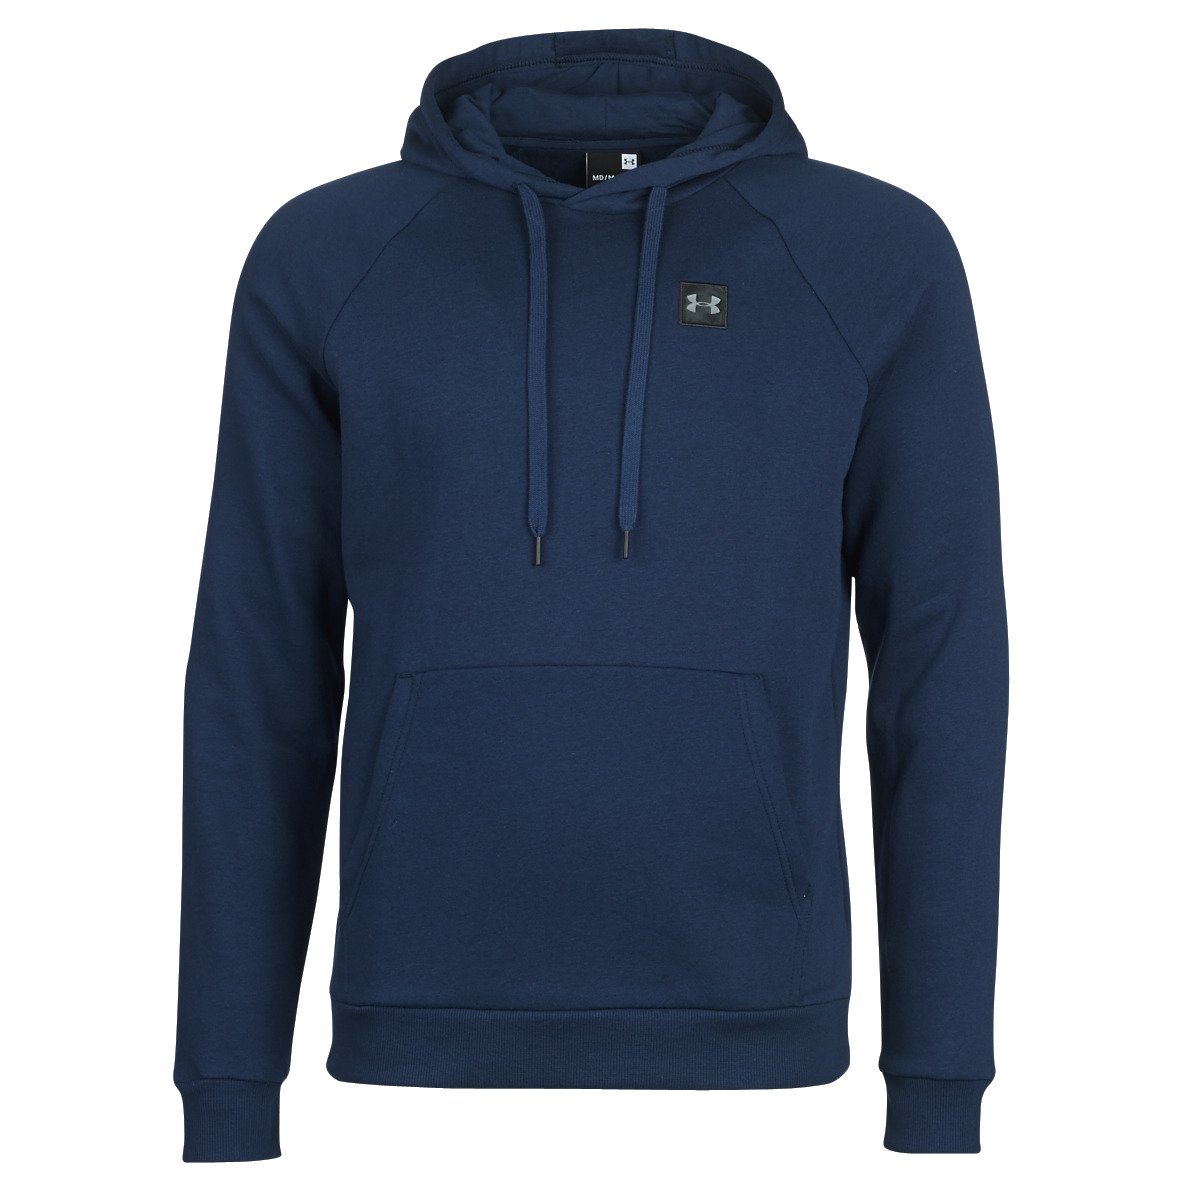 Under Armour Puloverji RIVAL FLEECE PO HOODIE Modra - Ceneje.si 58e0b6768f